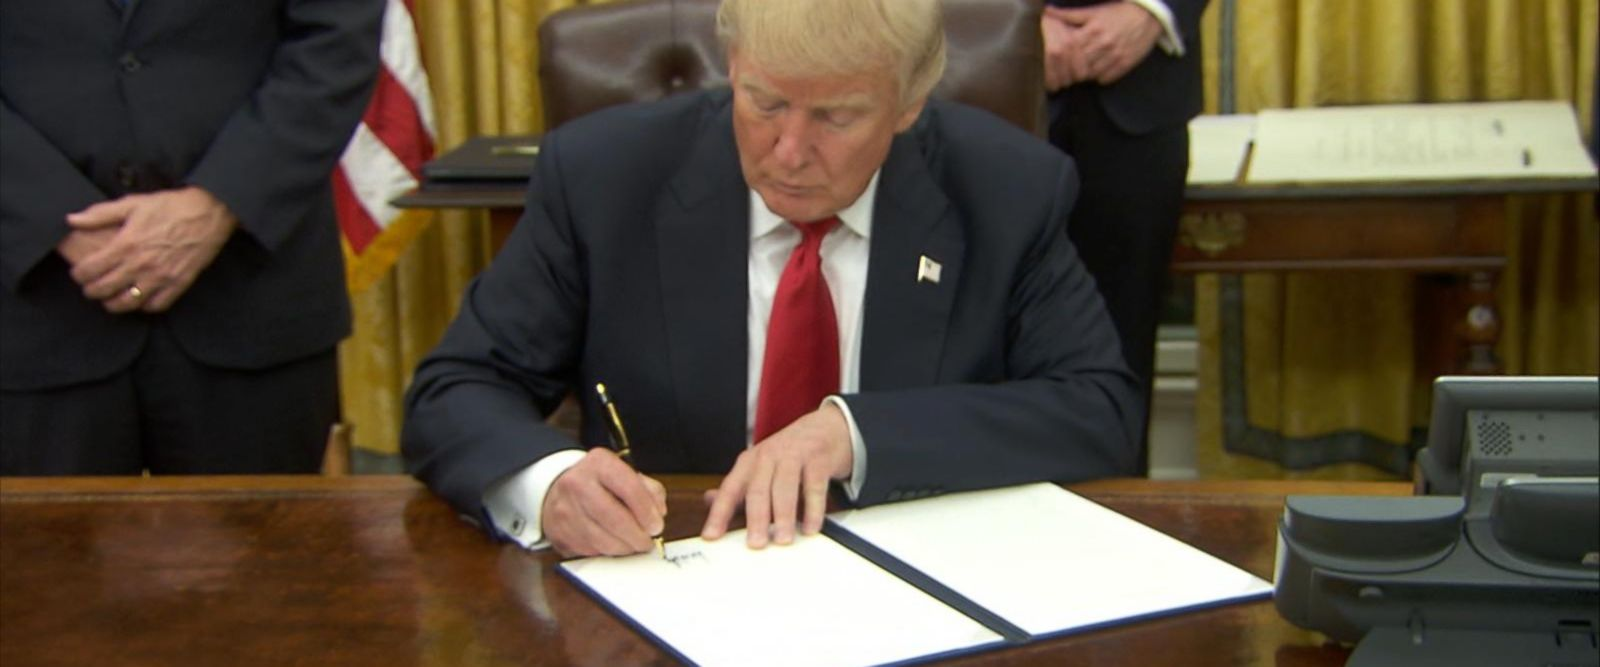 President Trump signs executive orders on his first night in the Oval Office.